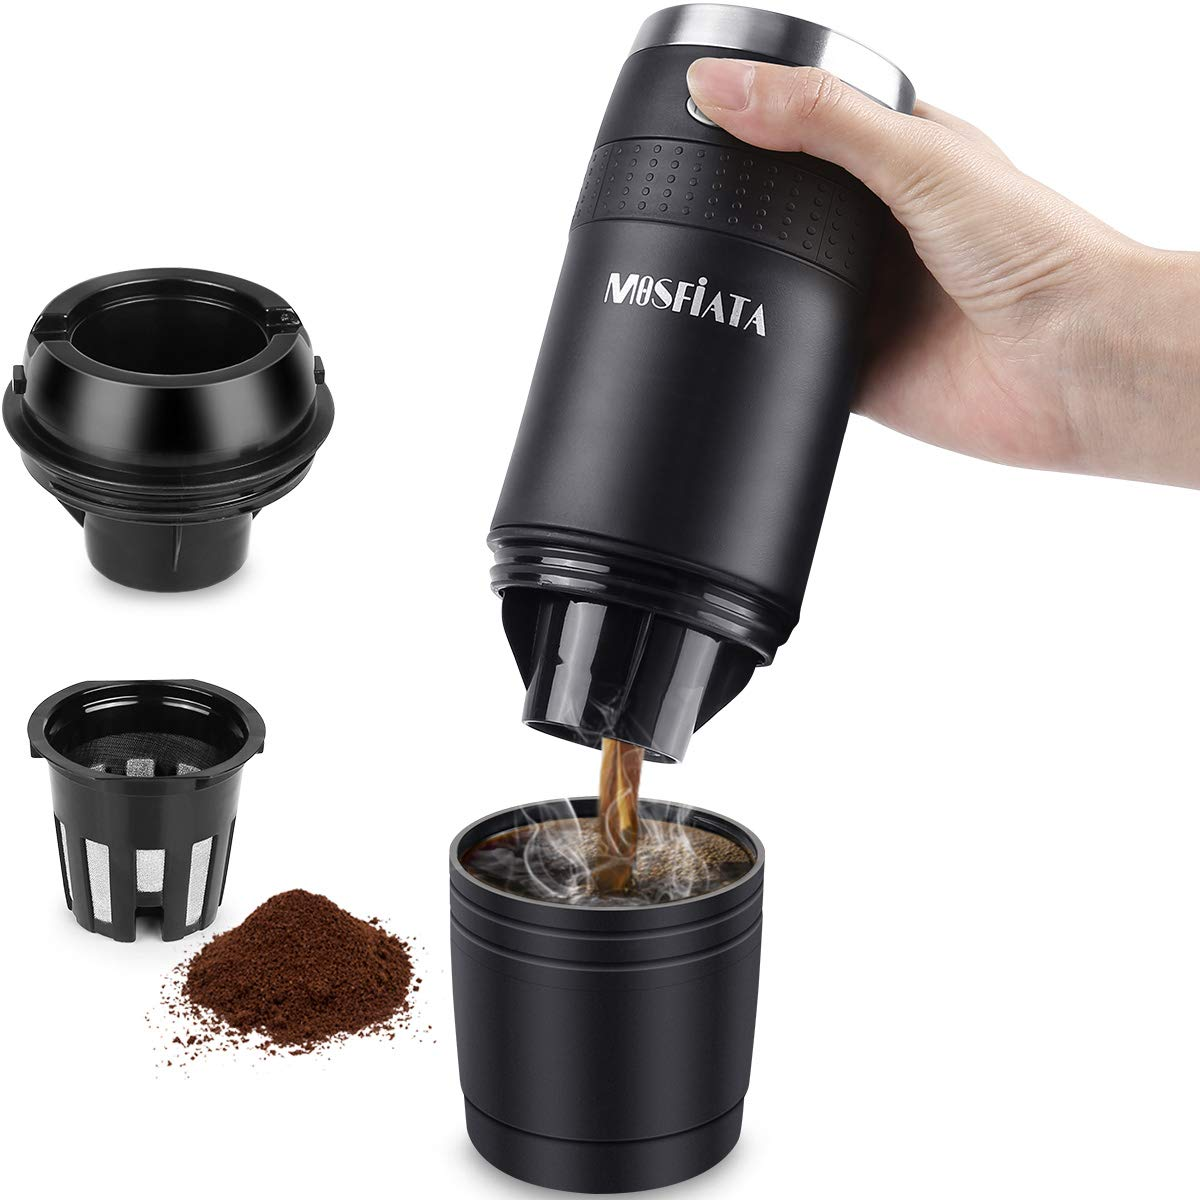 MOSFiATA Portable Coffee Maker, Compatible with K-Cup Capsule and Ground Portable Coffee Machine, Battery Operated (2AAA Battery), Portable Espresso Coffee Maker Perfect for Camping, Travel, Home and Office